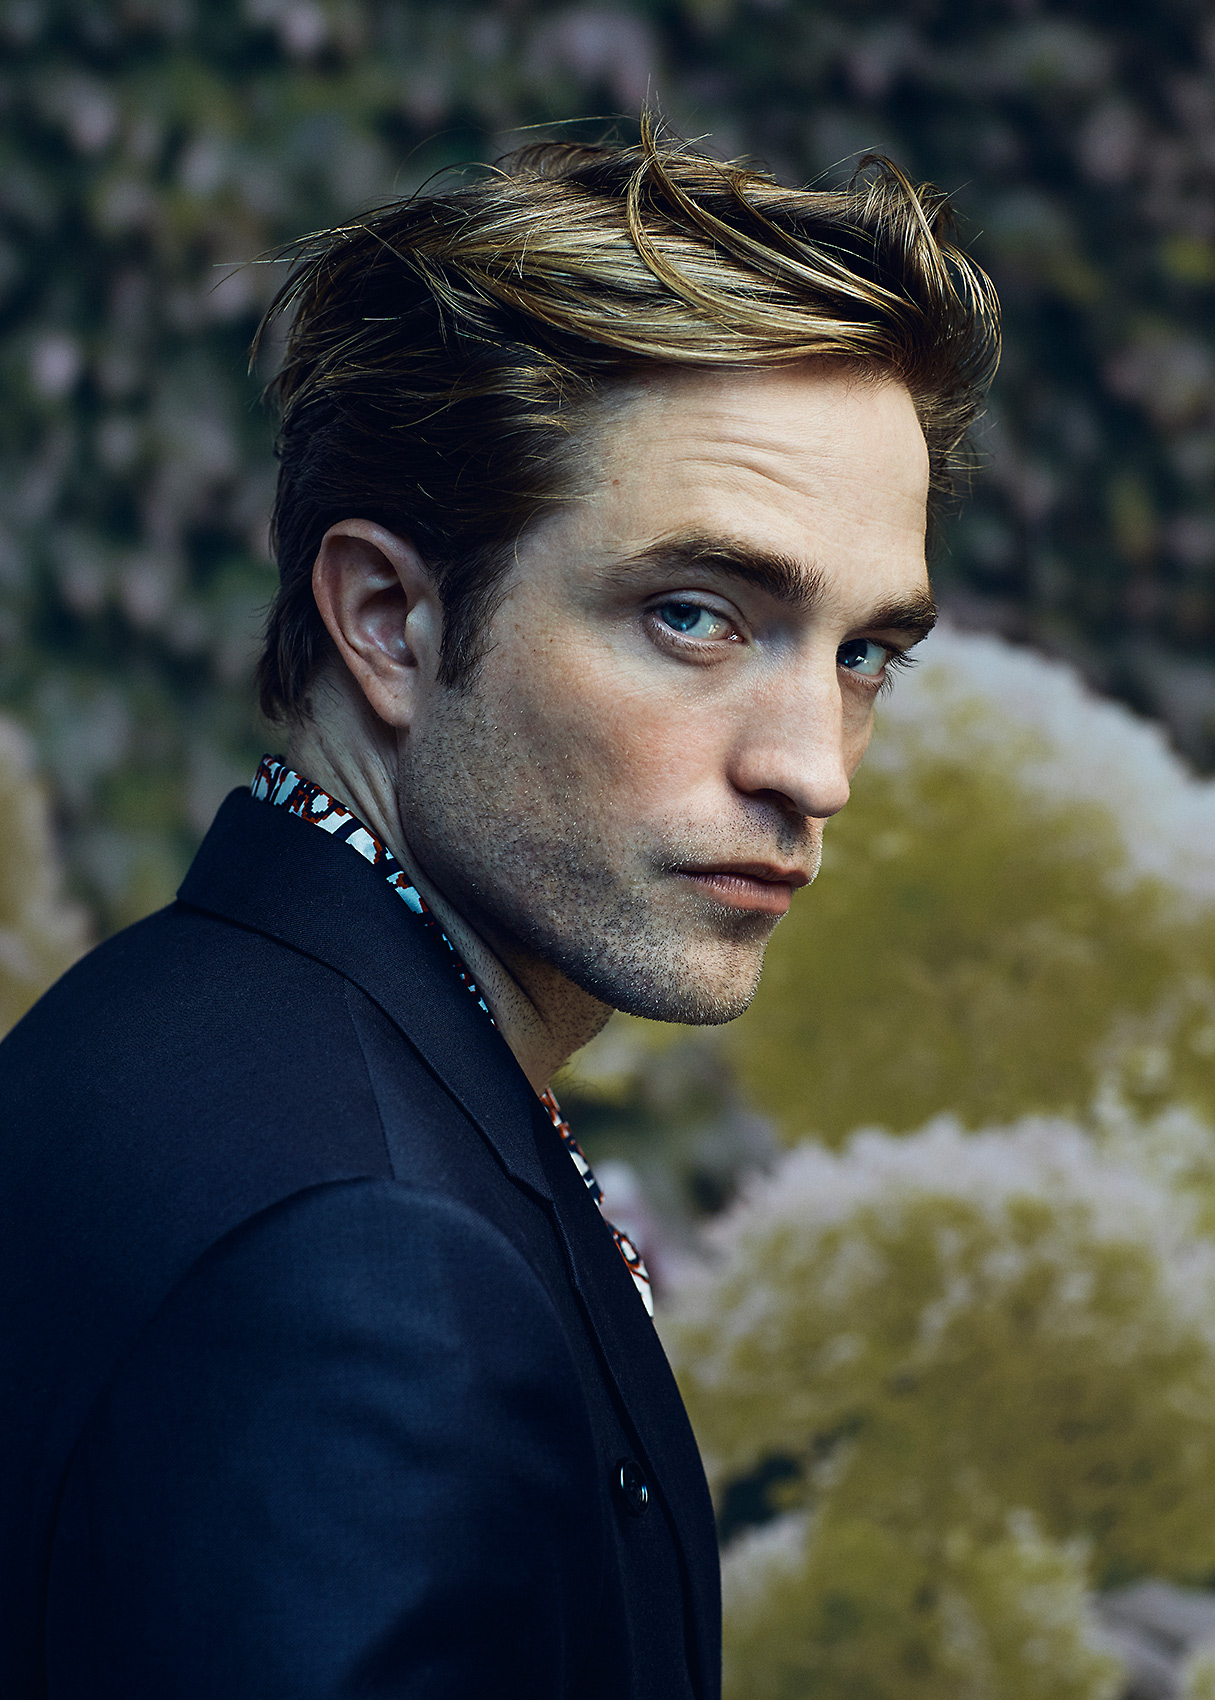 Robert Pattinson portrait tight